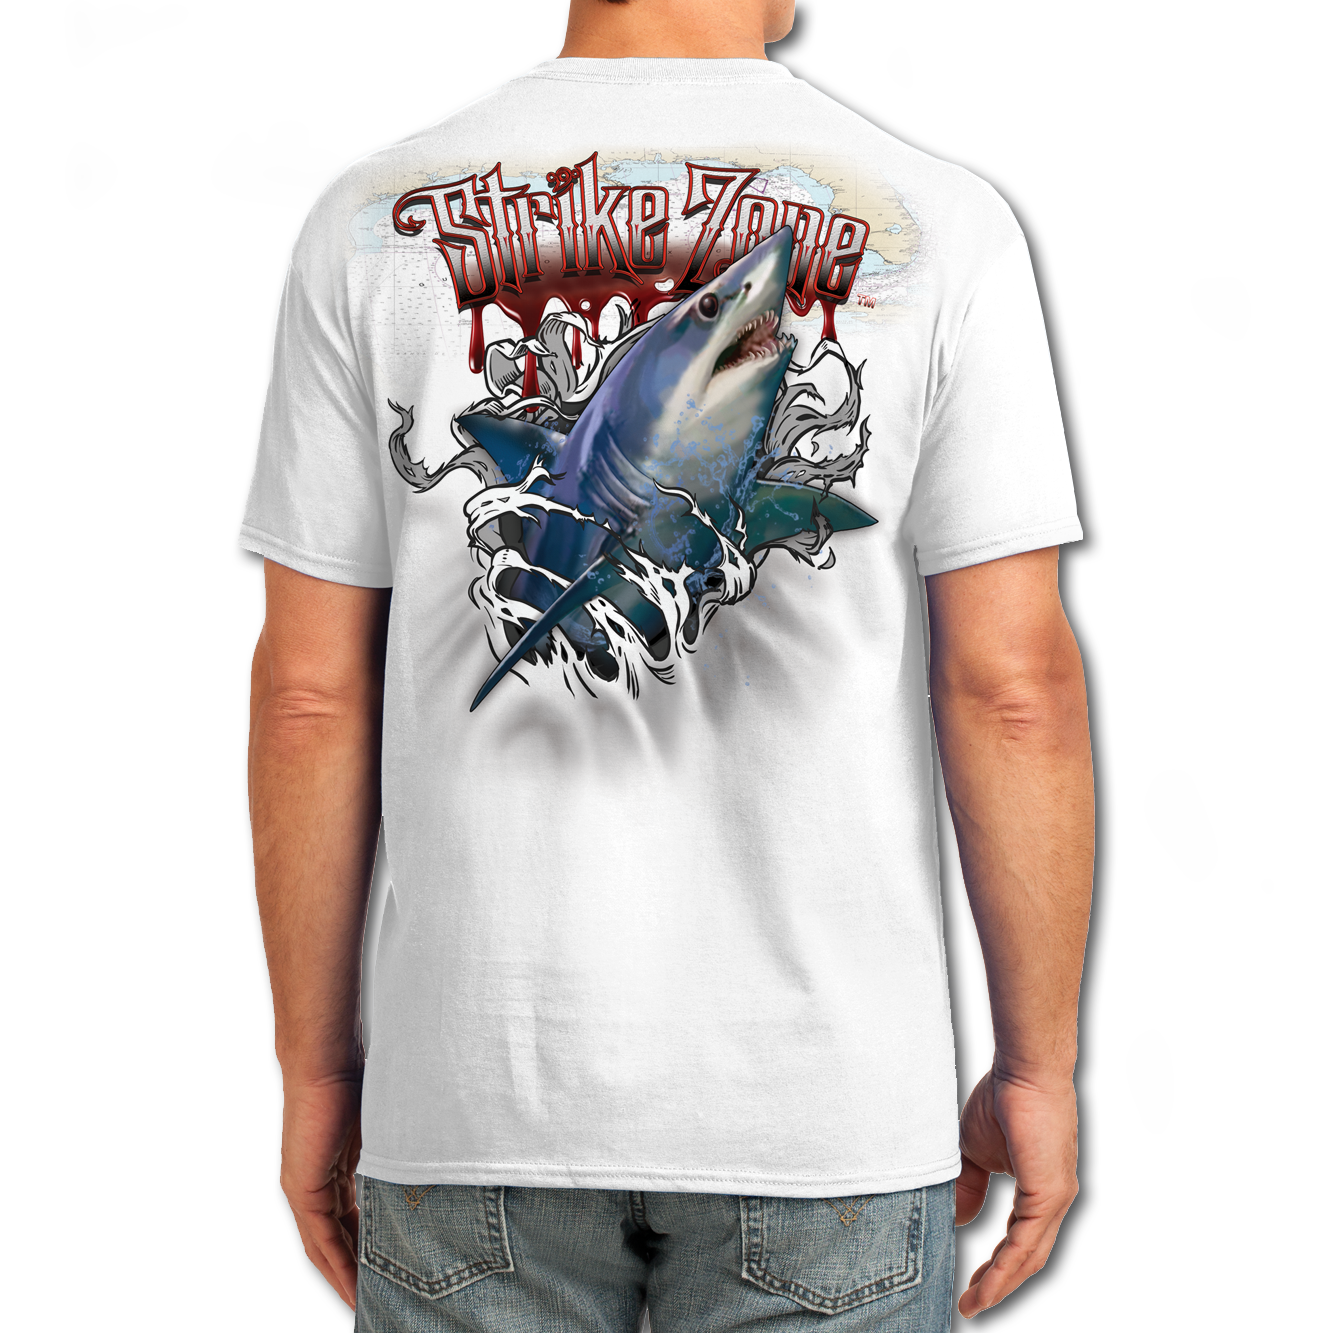 t-shirt-short-sleeve-white-jason-mathias-art-mako-shark.png